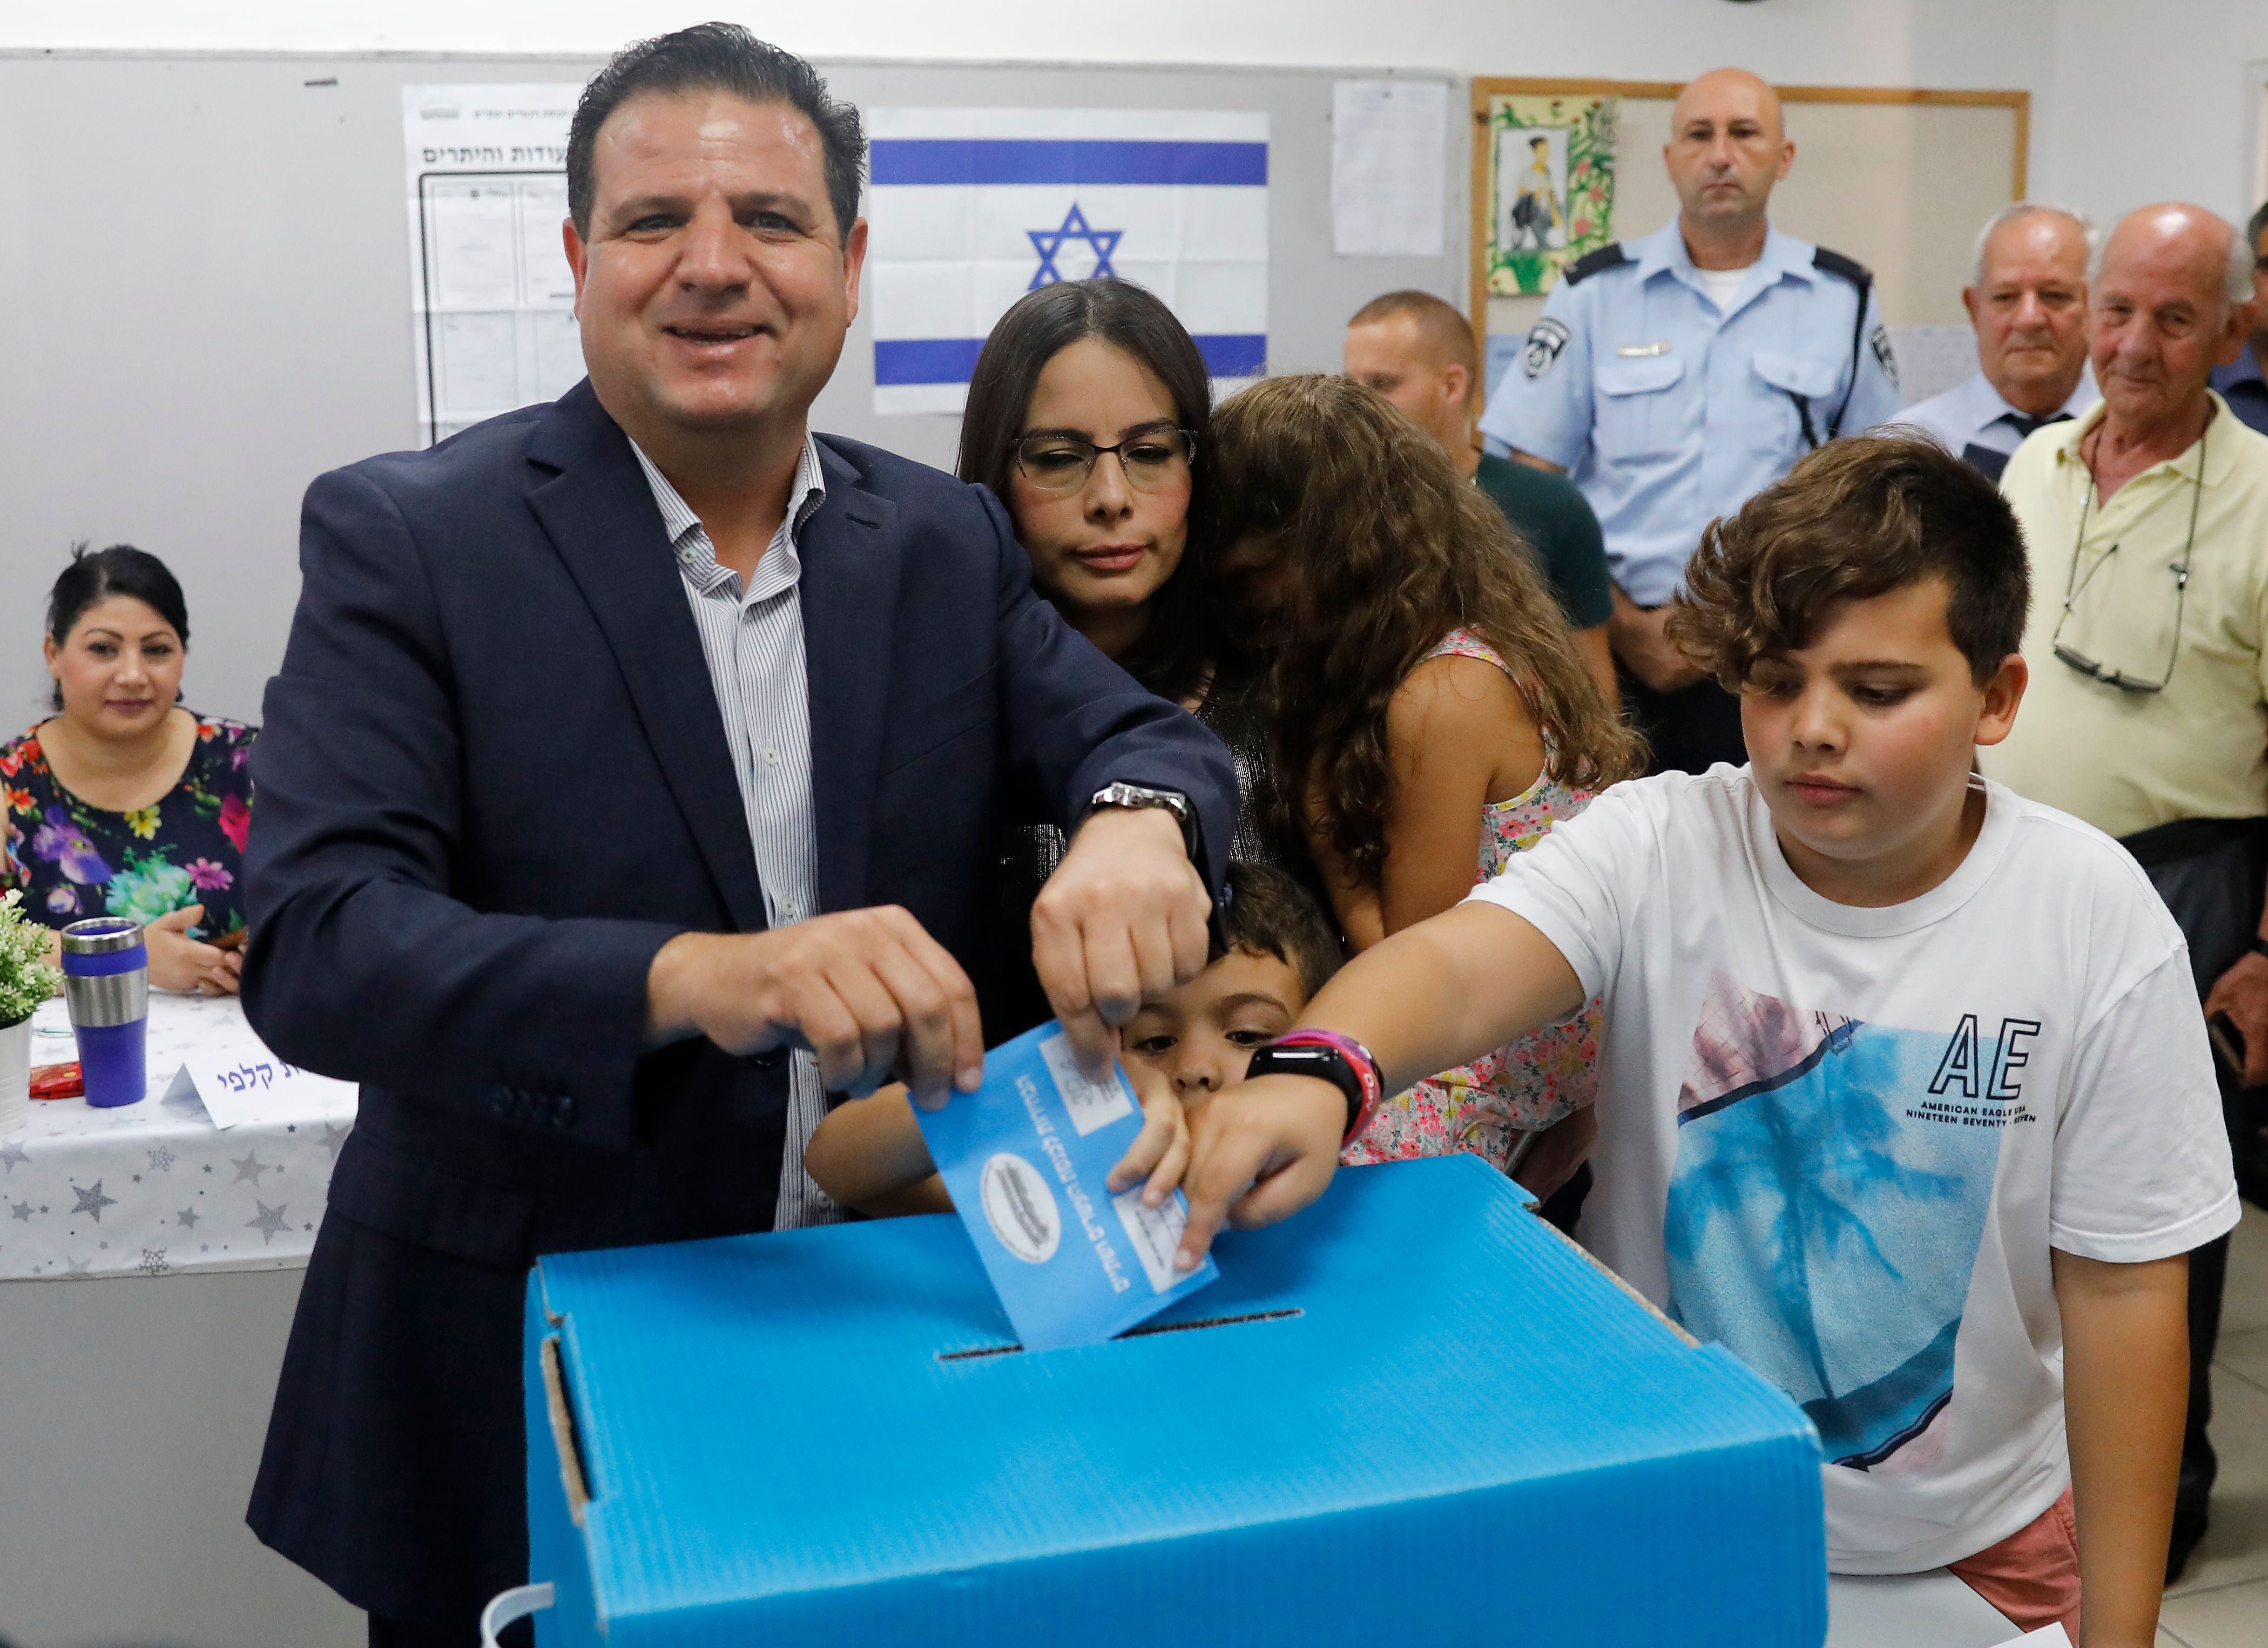 Israel's head of the mainly Arab Joint List alliance Ayman Odeh casts his ballot accompanied by his family during Israel's parliamentary election at a polling station in Haifa on September 17, 2019.